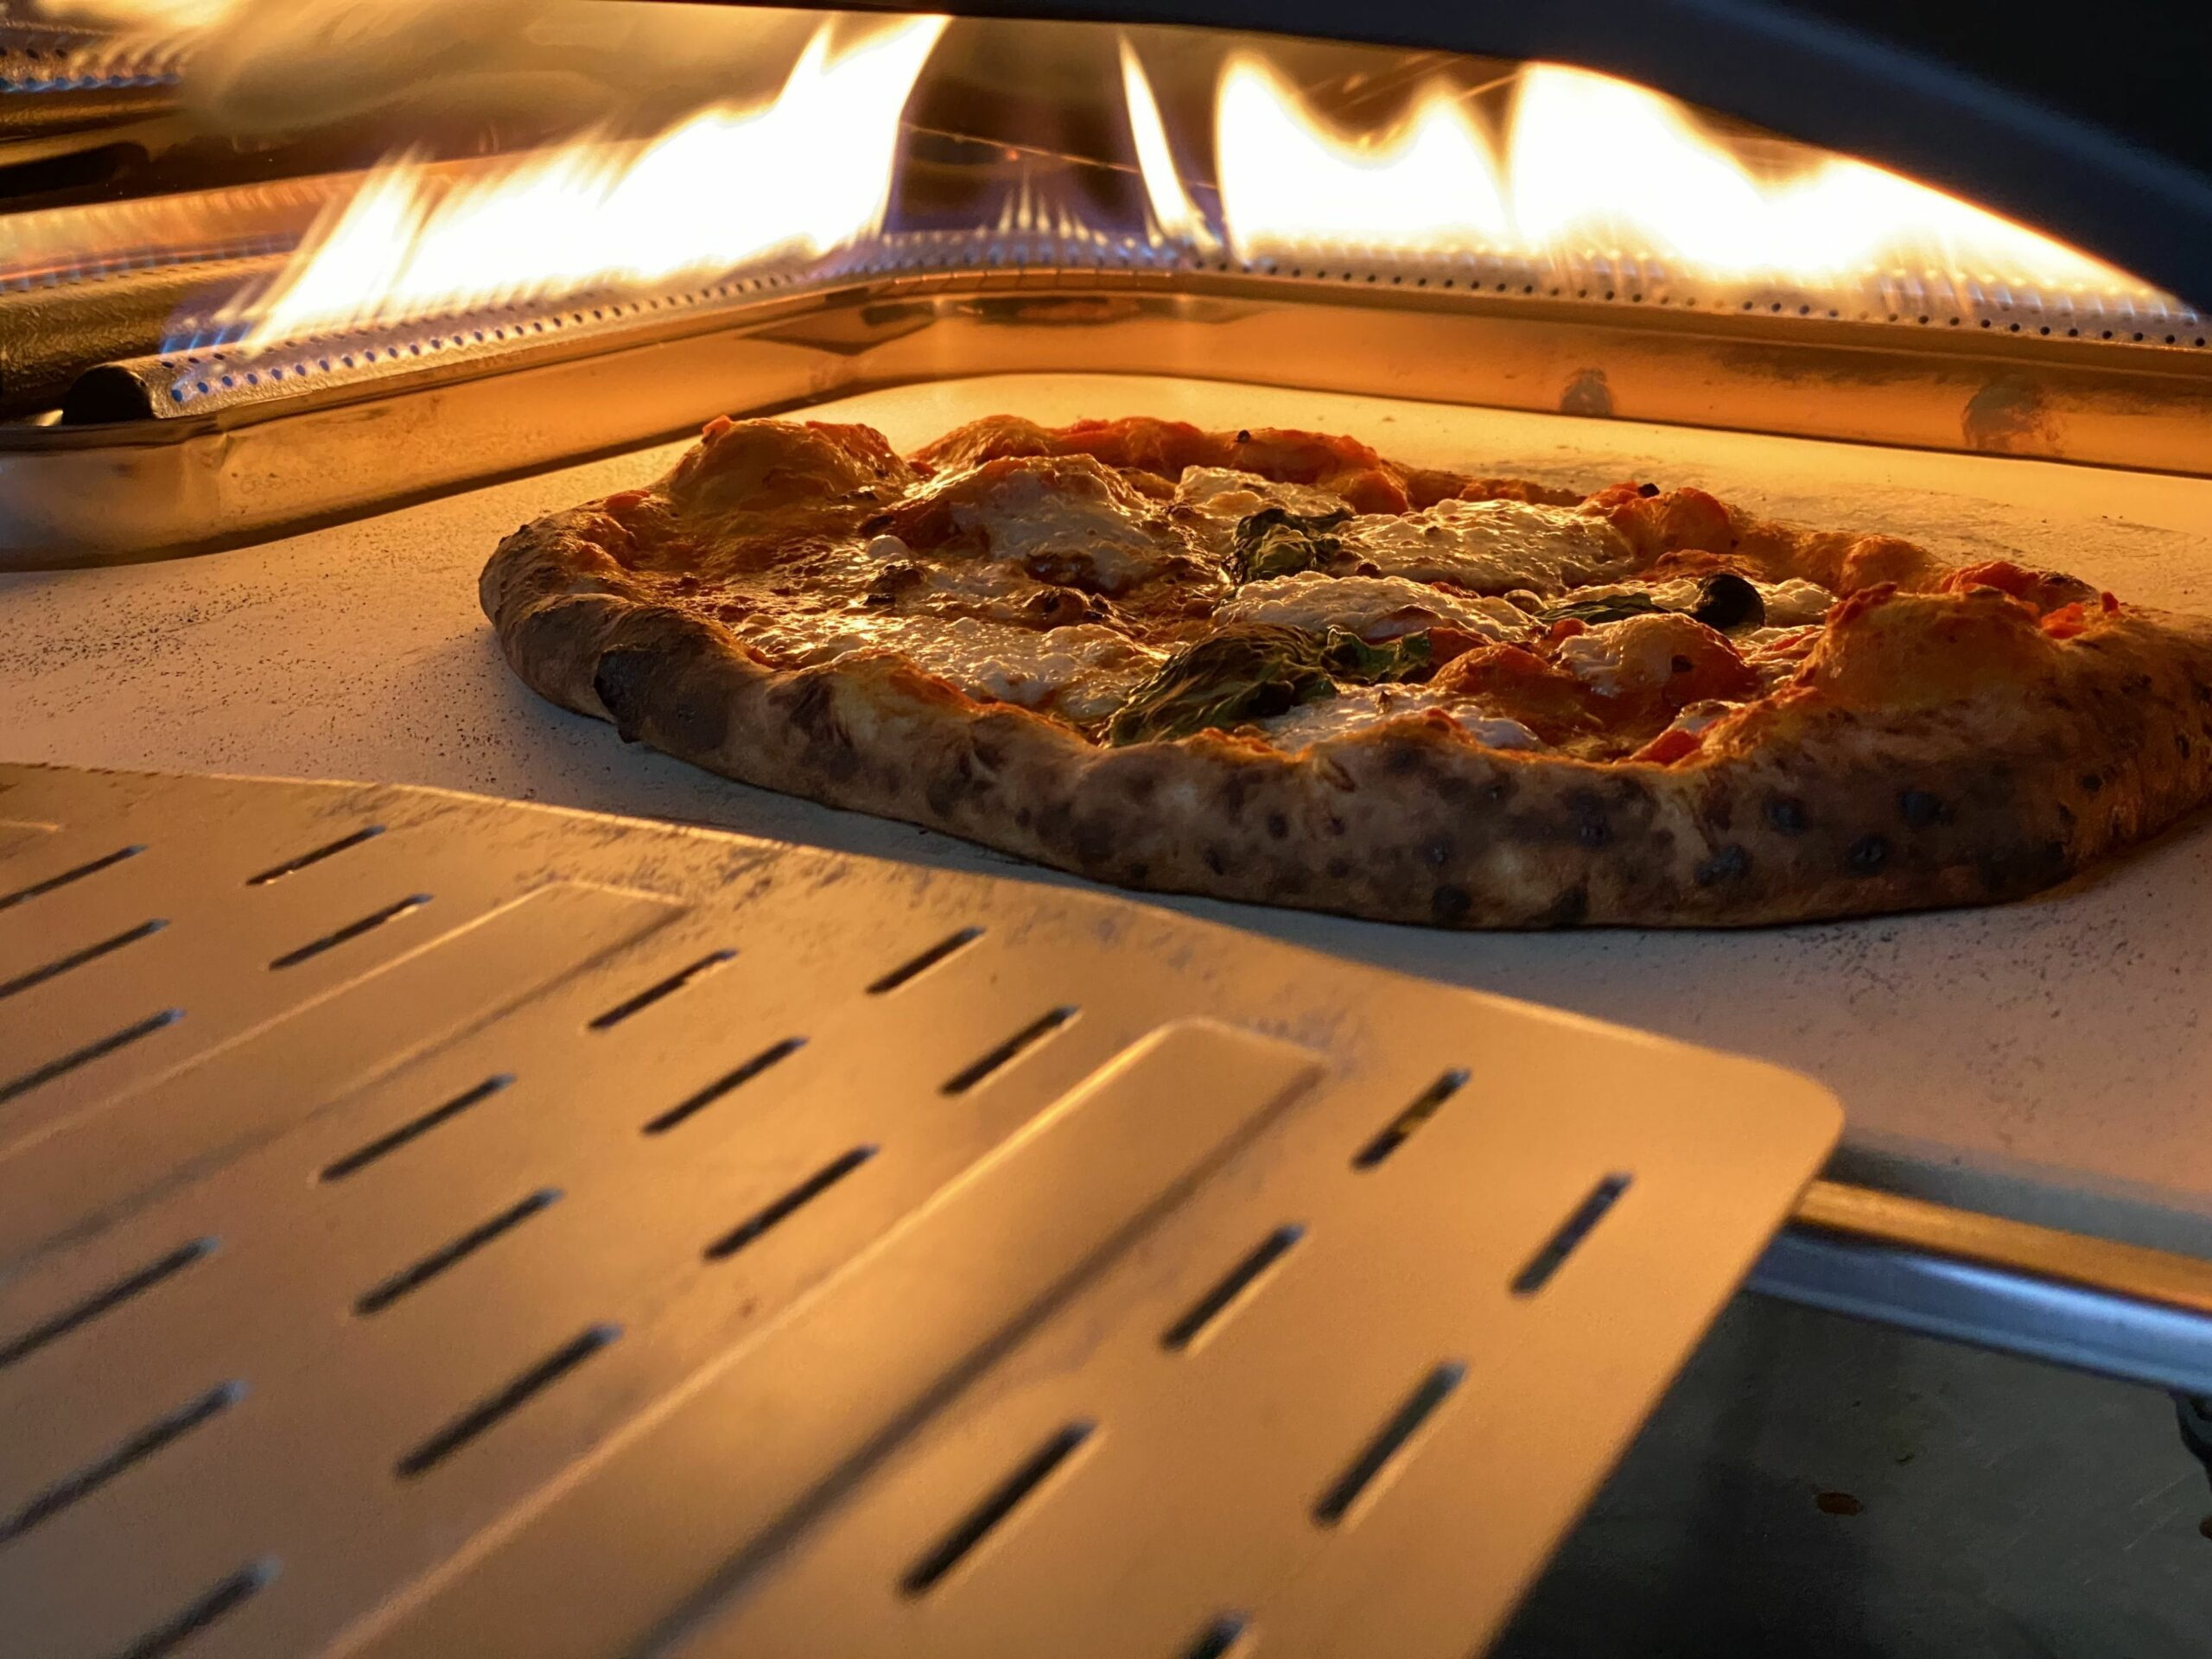 Ooni's Koda 12 pizza oven is the rare kitchen gadget that delivers ...